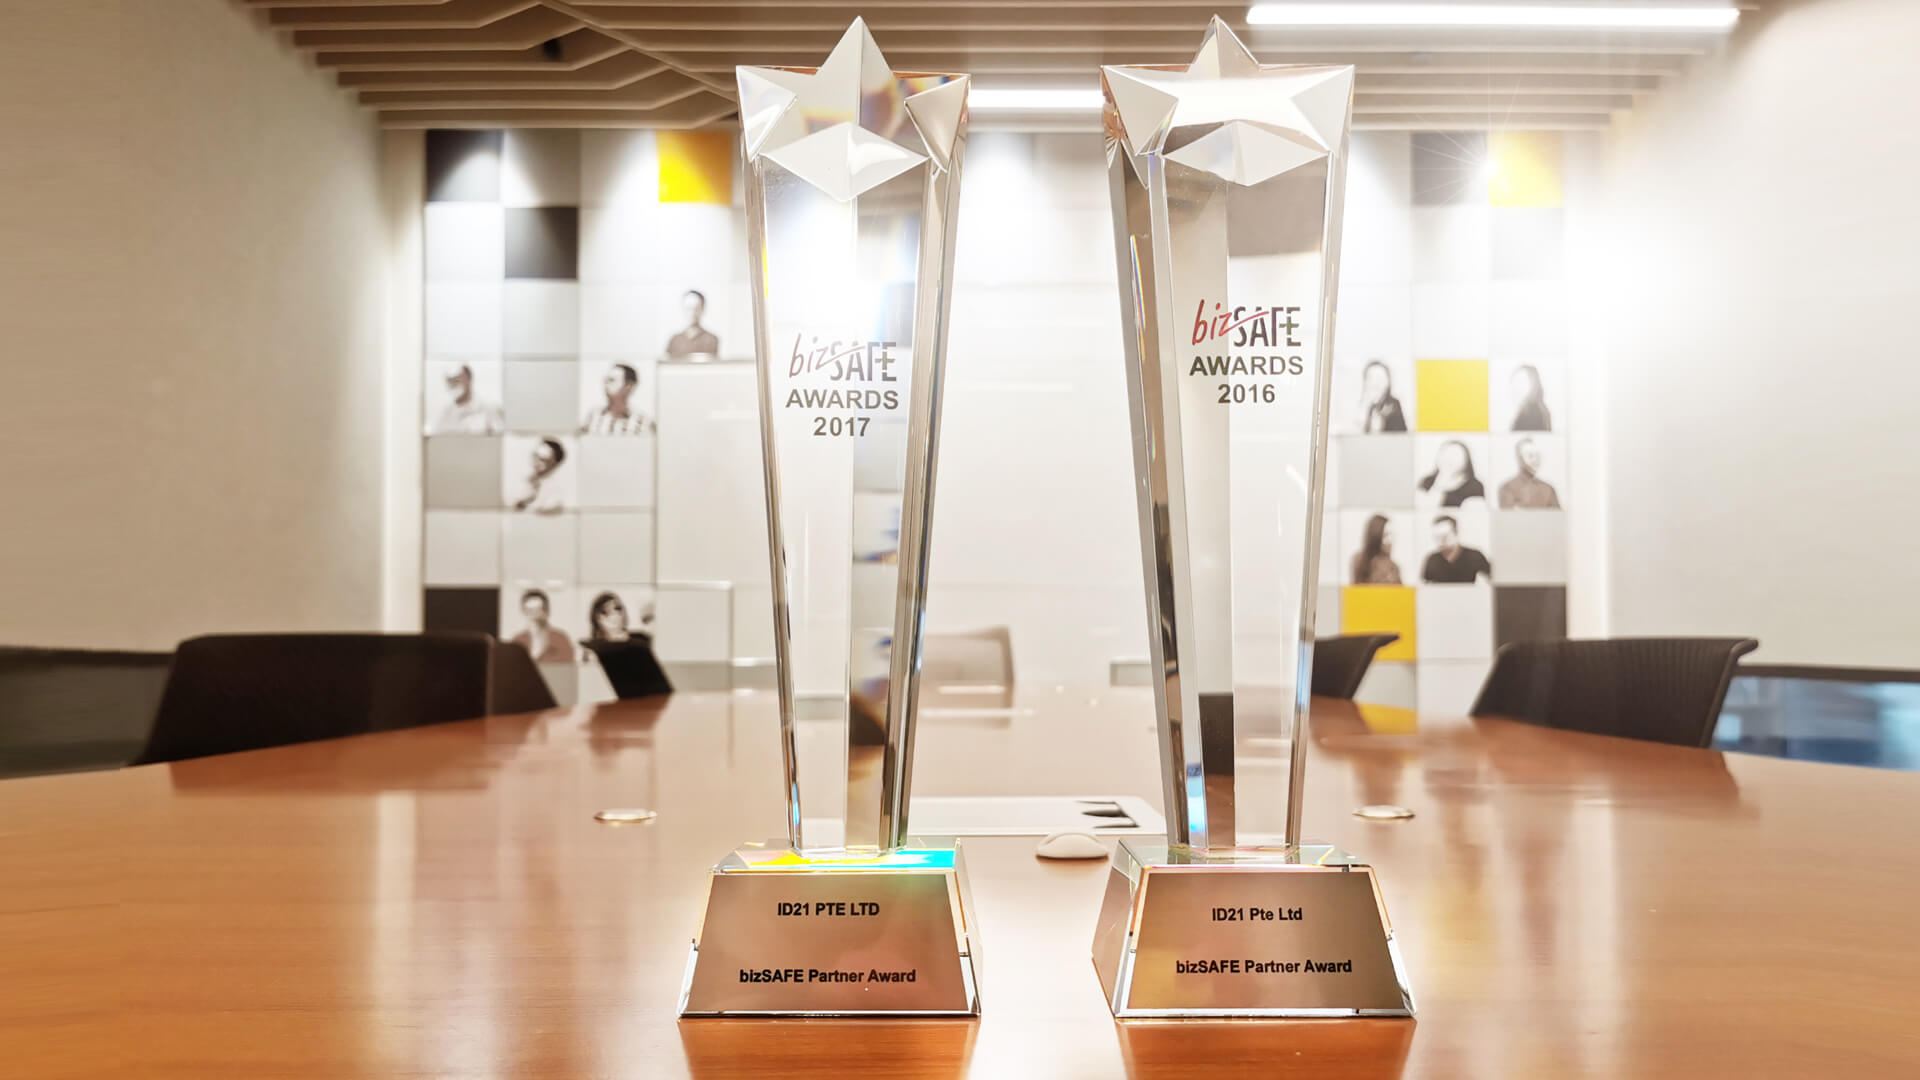 A New Record for ID21: bizSAFE Partner Awards